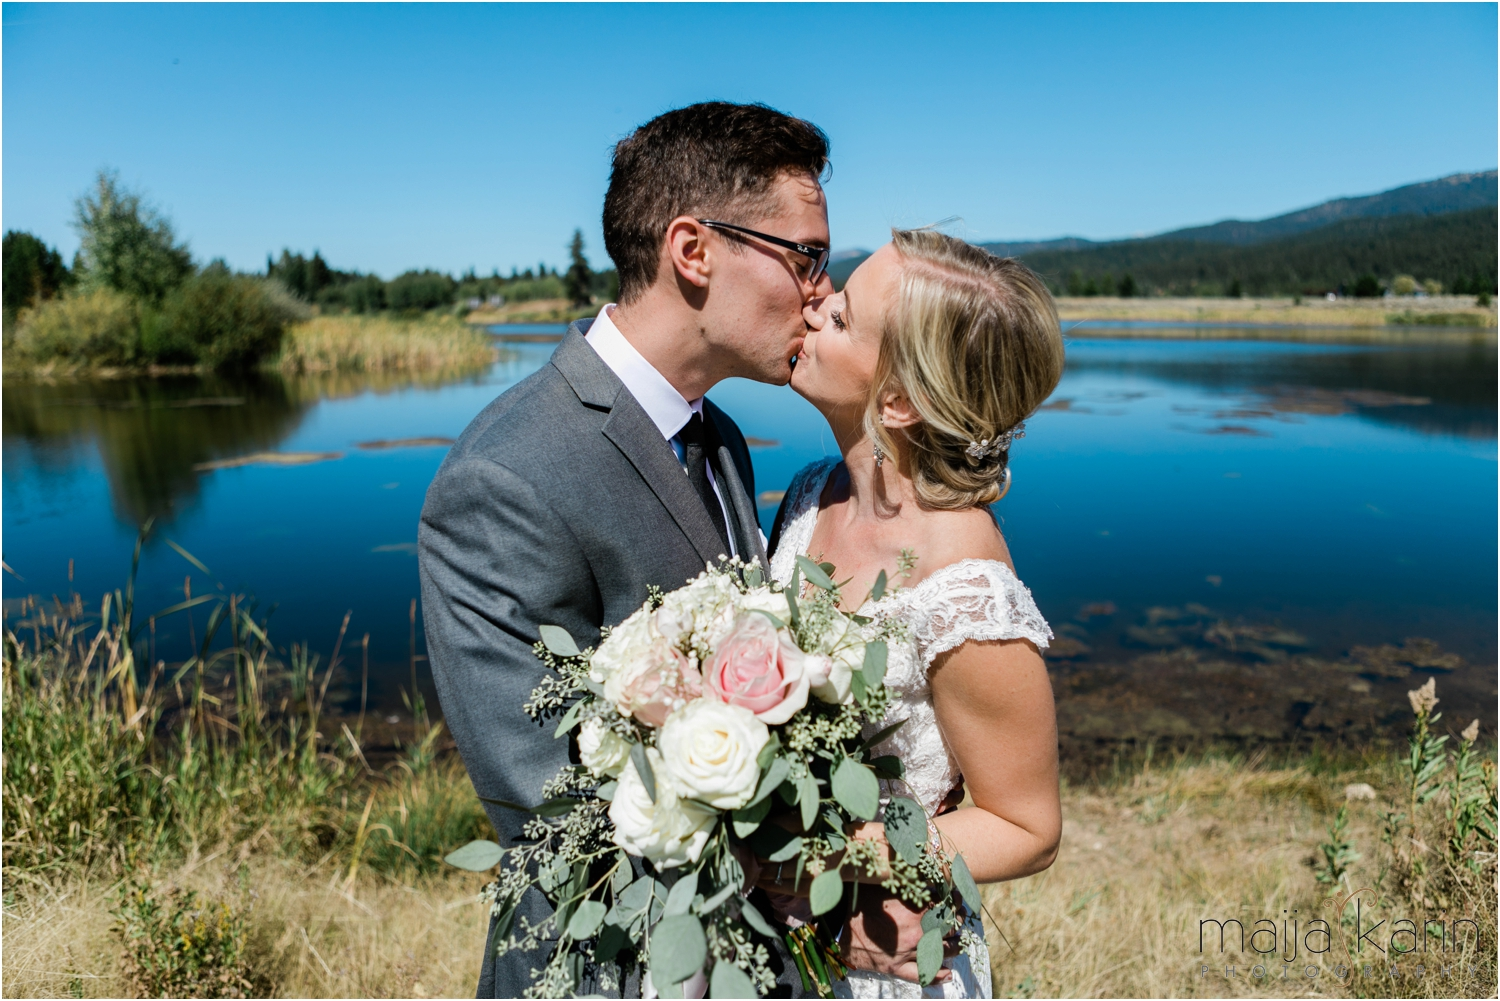 McCall-Idaho-Wedding-Maija-Karin-Photography_0019.jpg